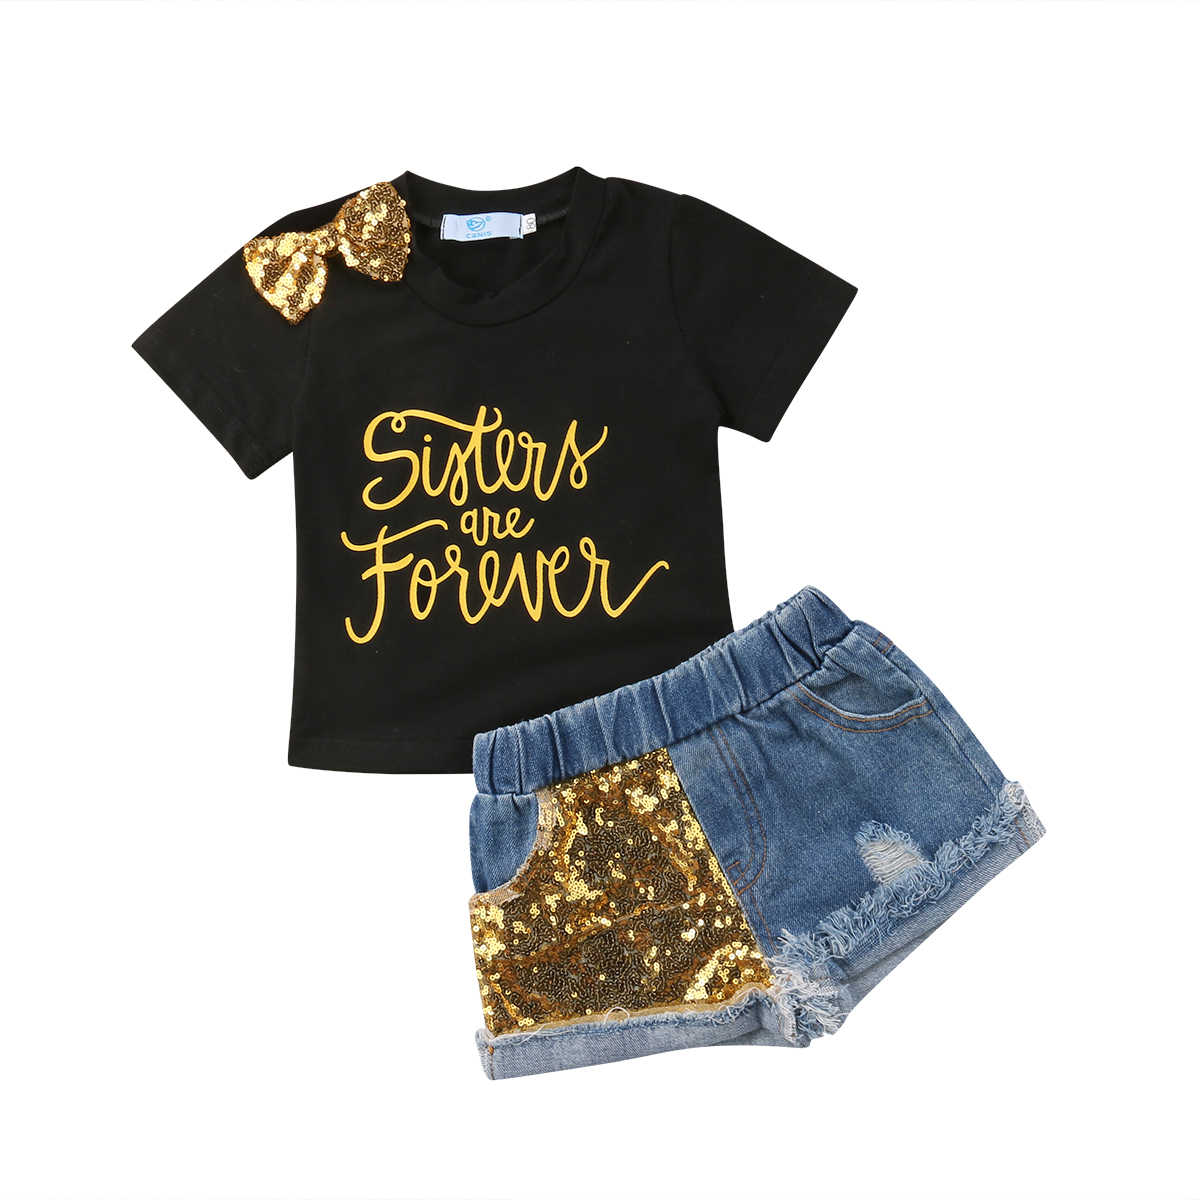 a27dcce460 2018 Kids Baby Girl Bowknot T-Shirts Black Top+Sequins Gold Shorts Denim  Jeans